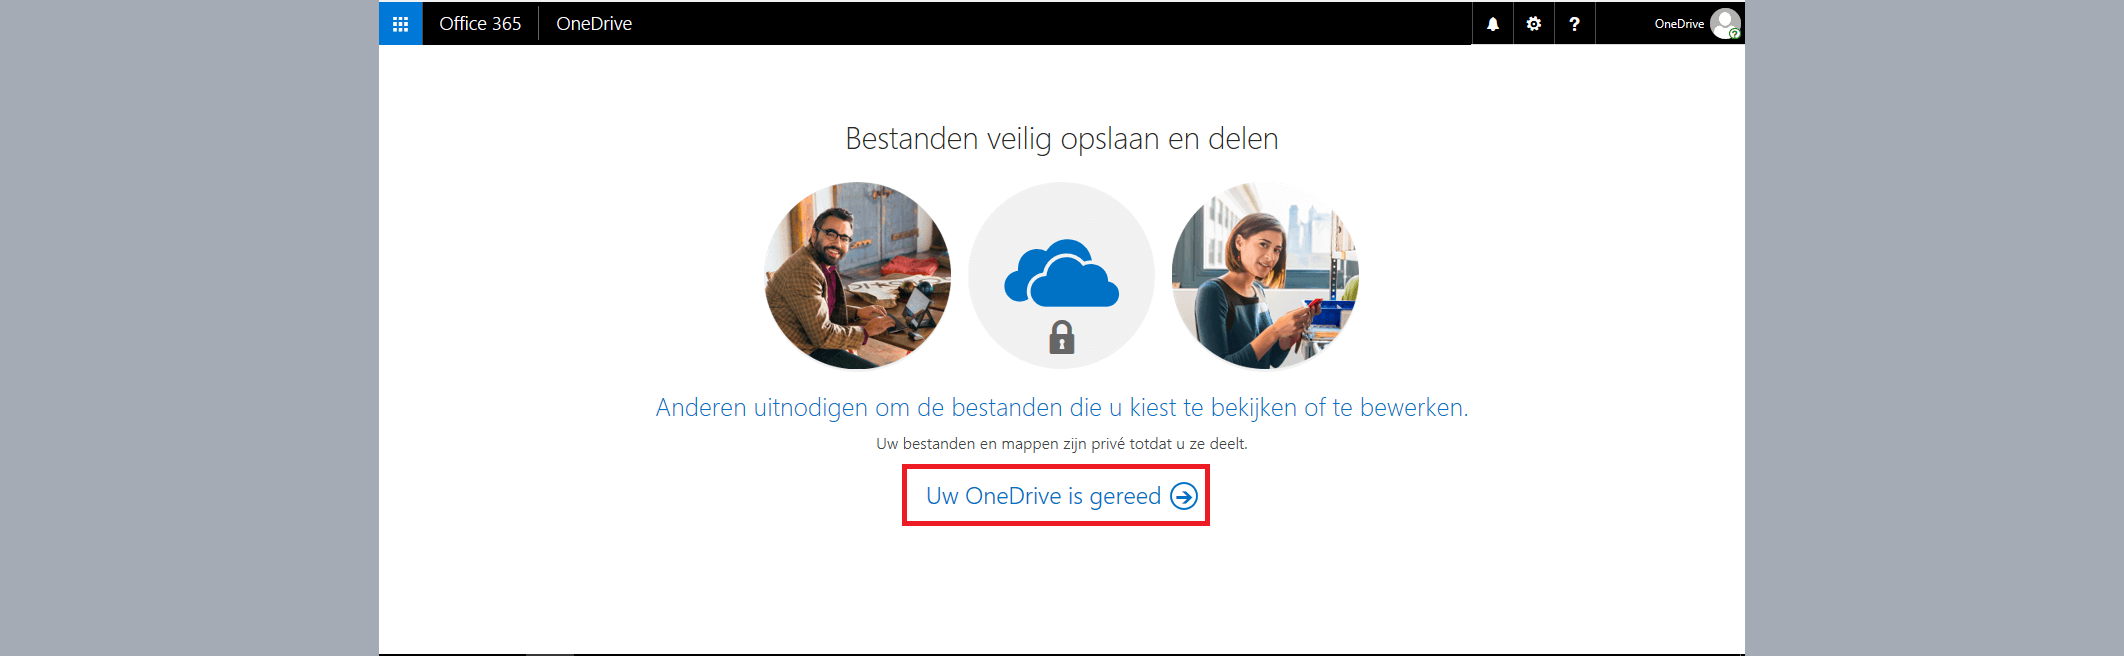 onedrive is gereed